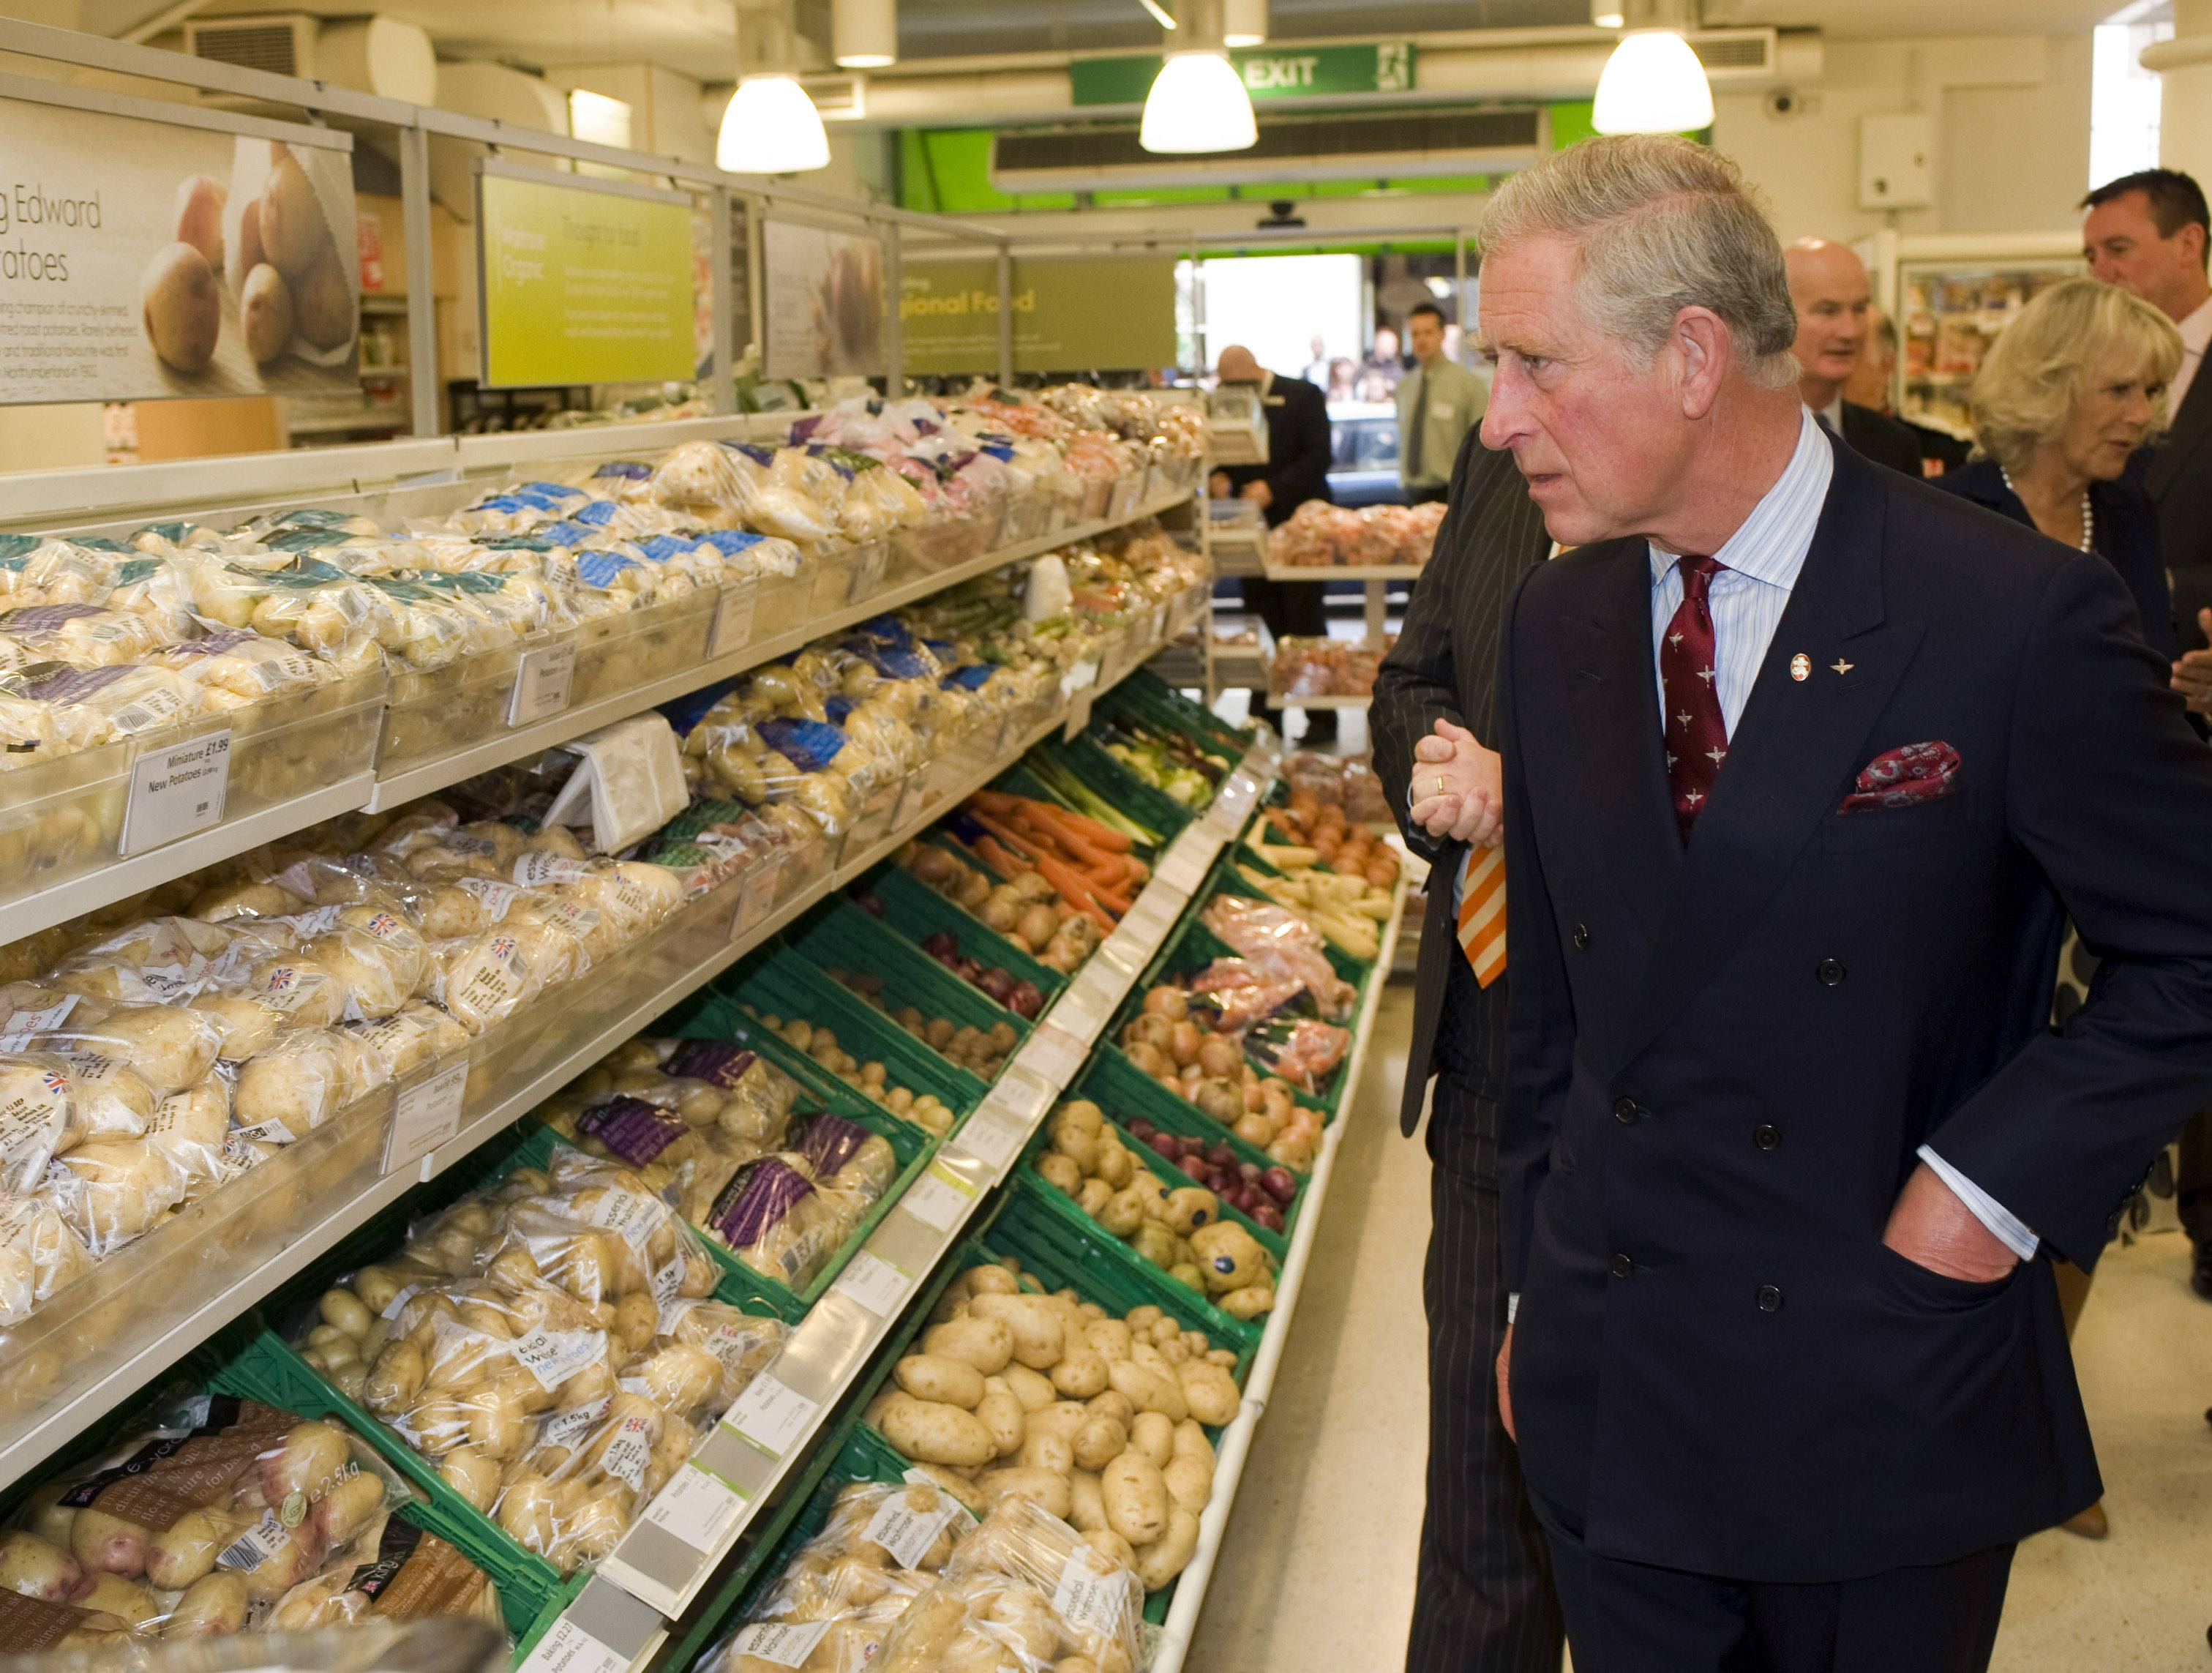 Prince Charles looking at vegetables in grocery store